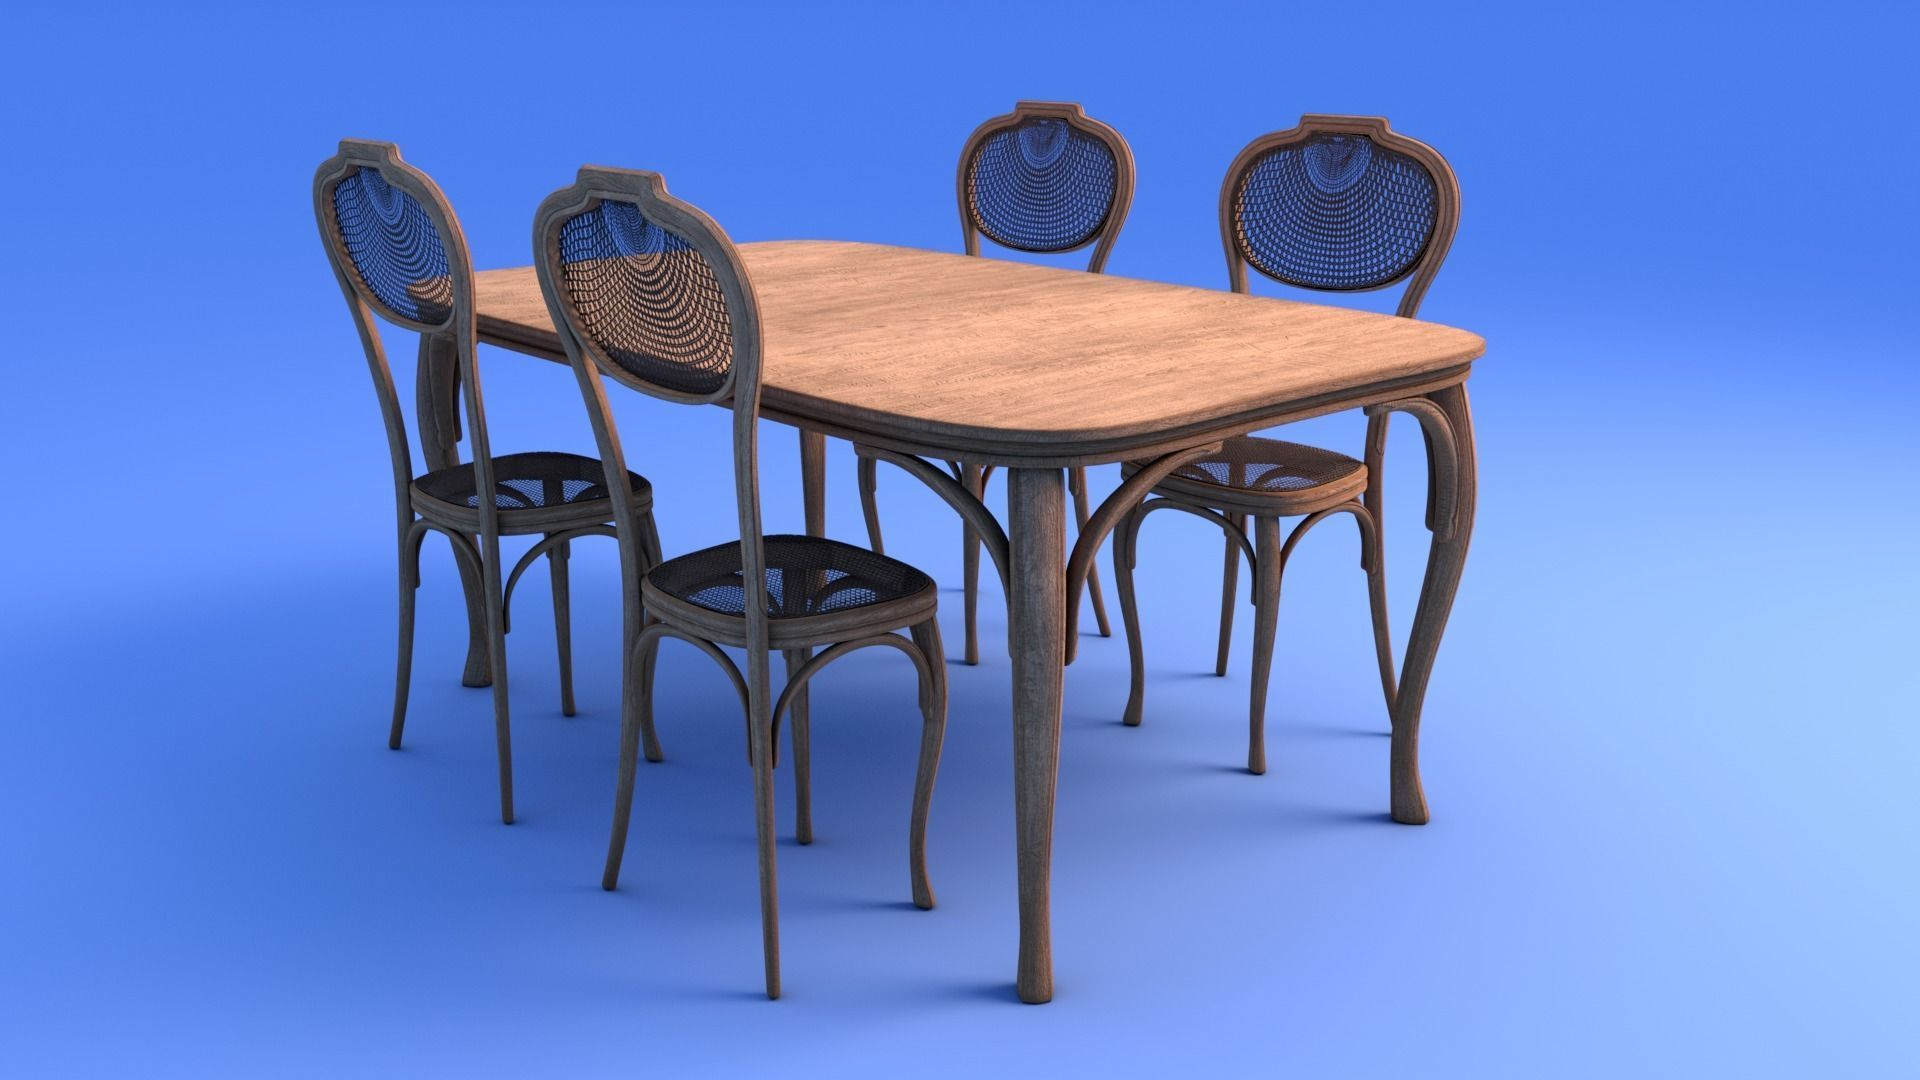 Art Nouveau Dining Table And Chairs 3D Model